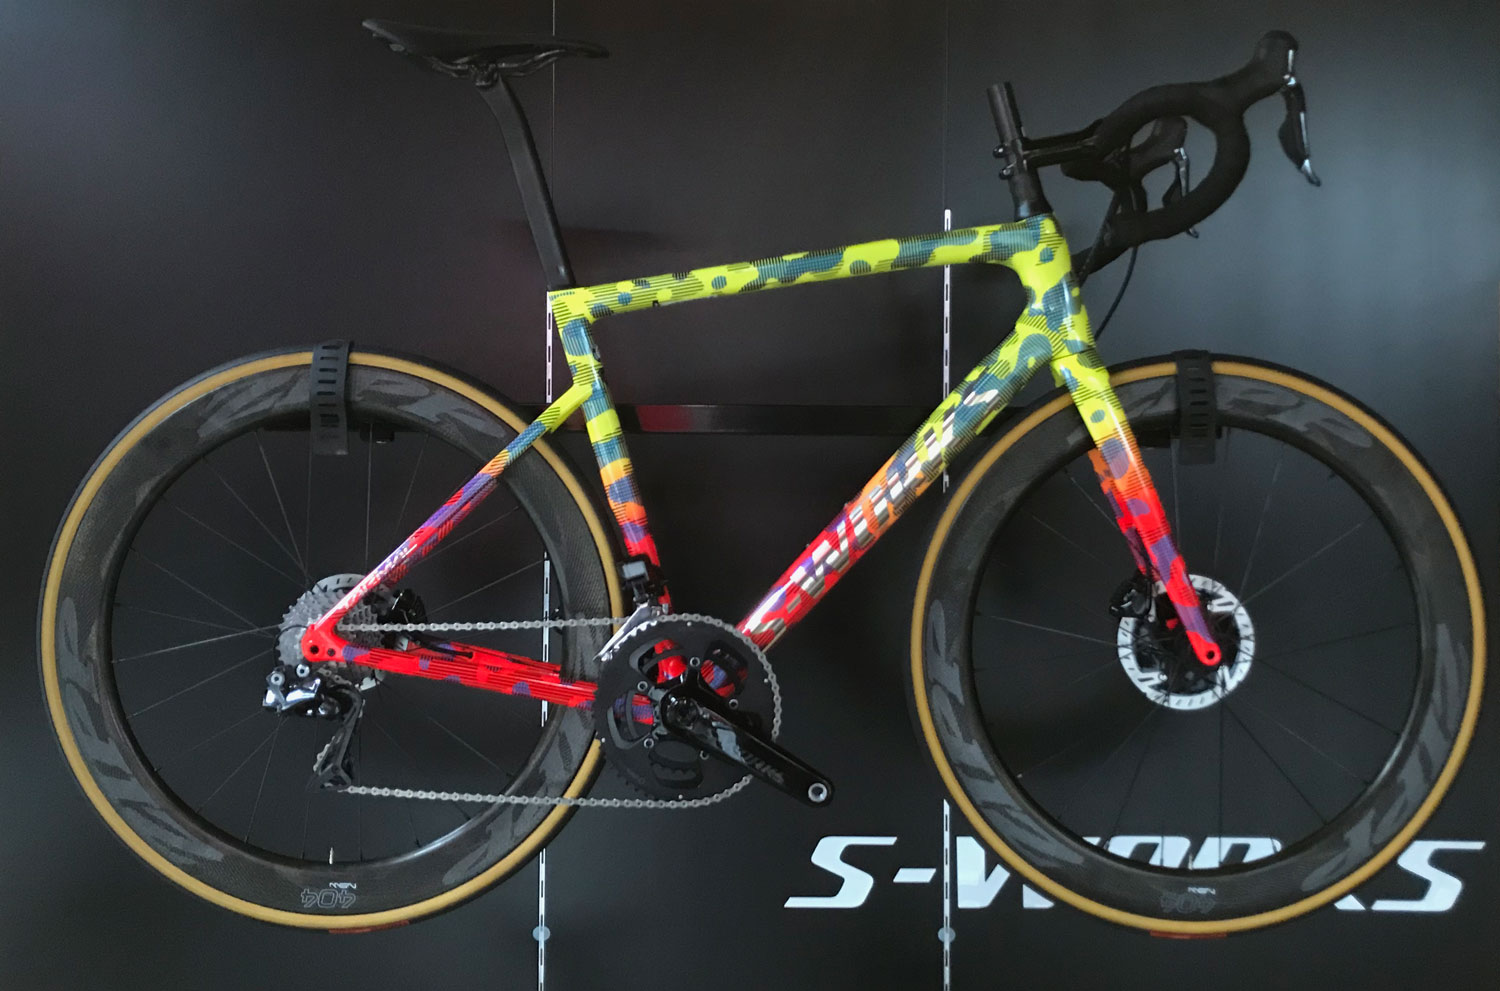 silniční kolo Specialized S-Works Tarmac SL6 Disc Di2 Cyklo 69 Custom 2020 yellow/red/black